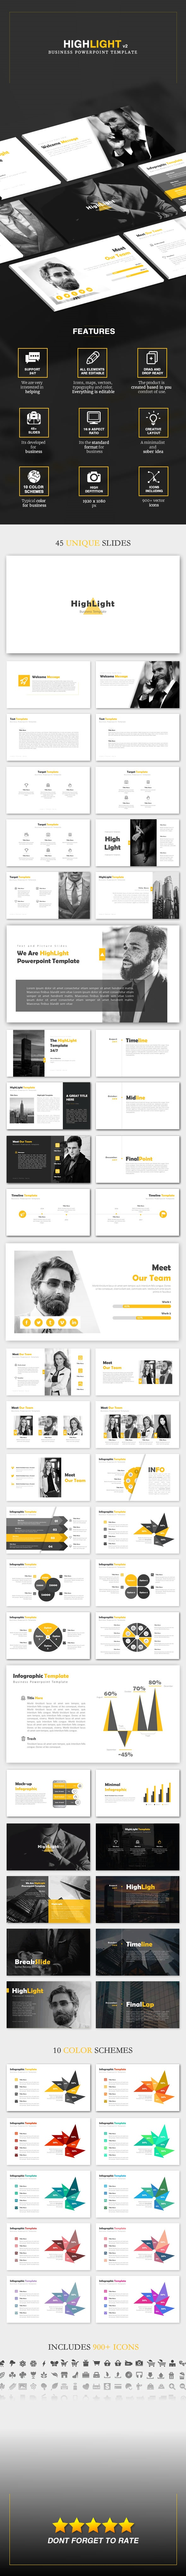 Highlight v2 - Business Powerpoint Template - Business PowerPoint Templates